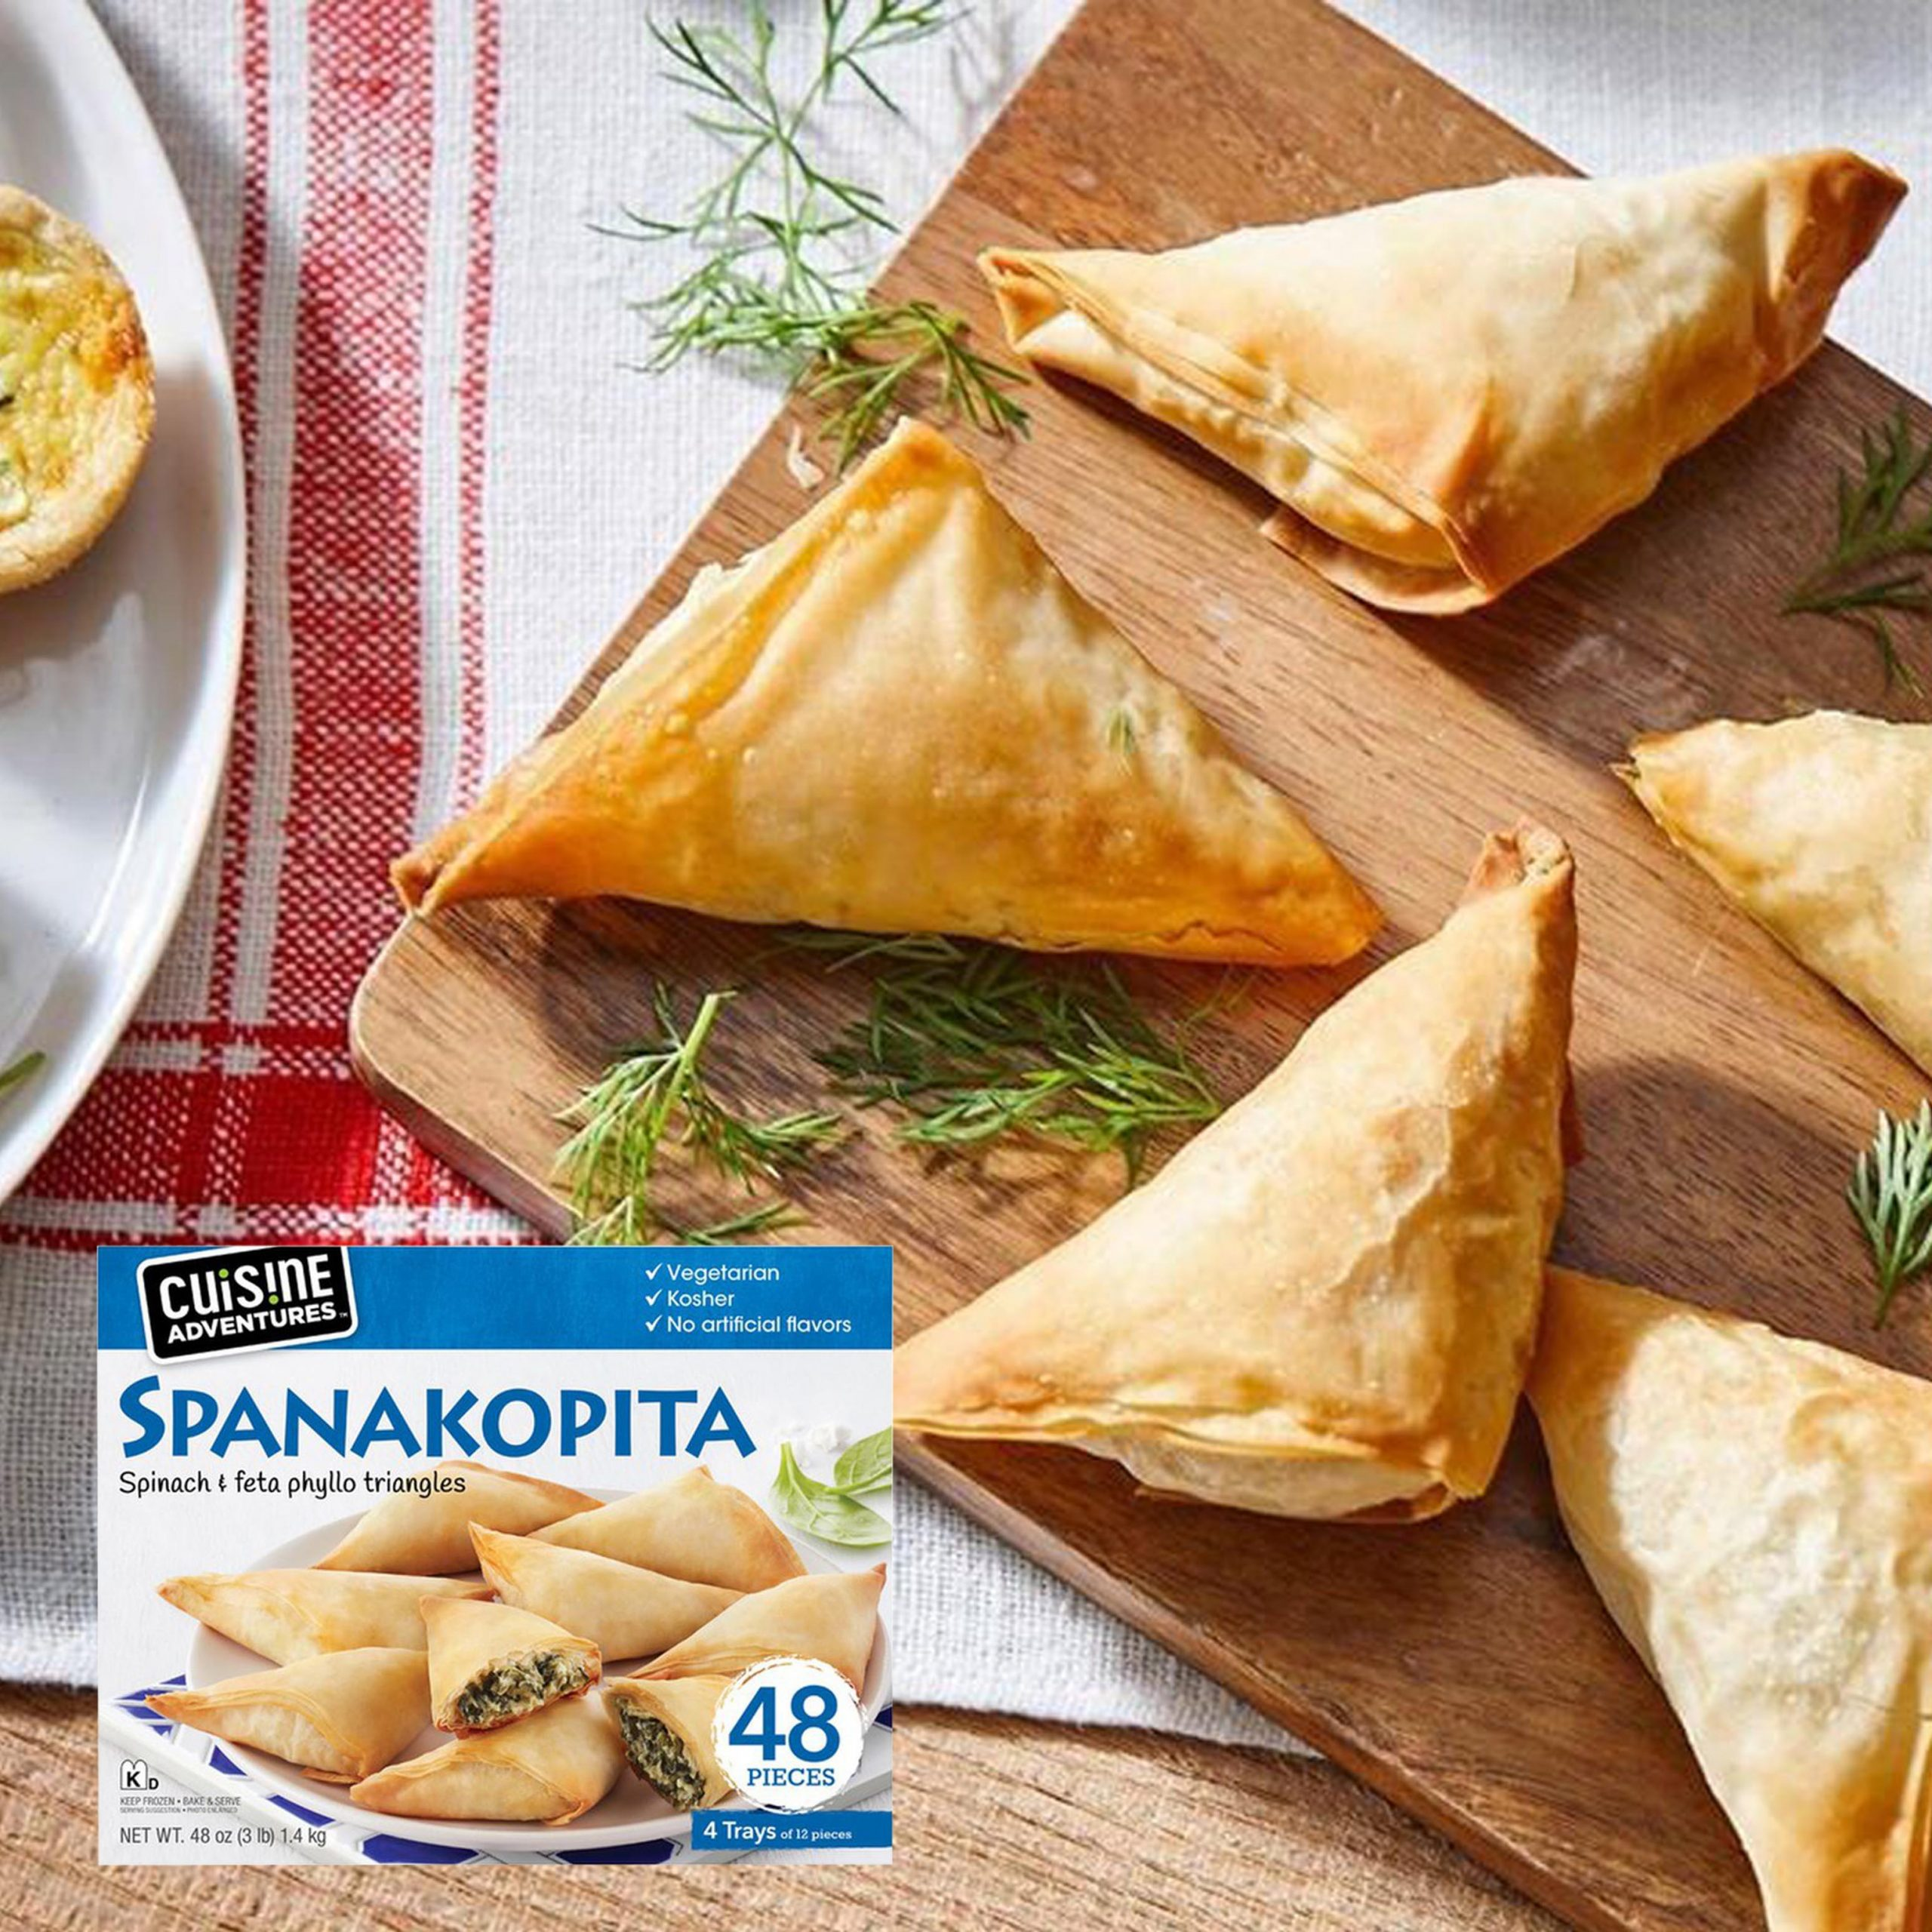 Cuisine Adventures Spanakopita Feature 2